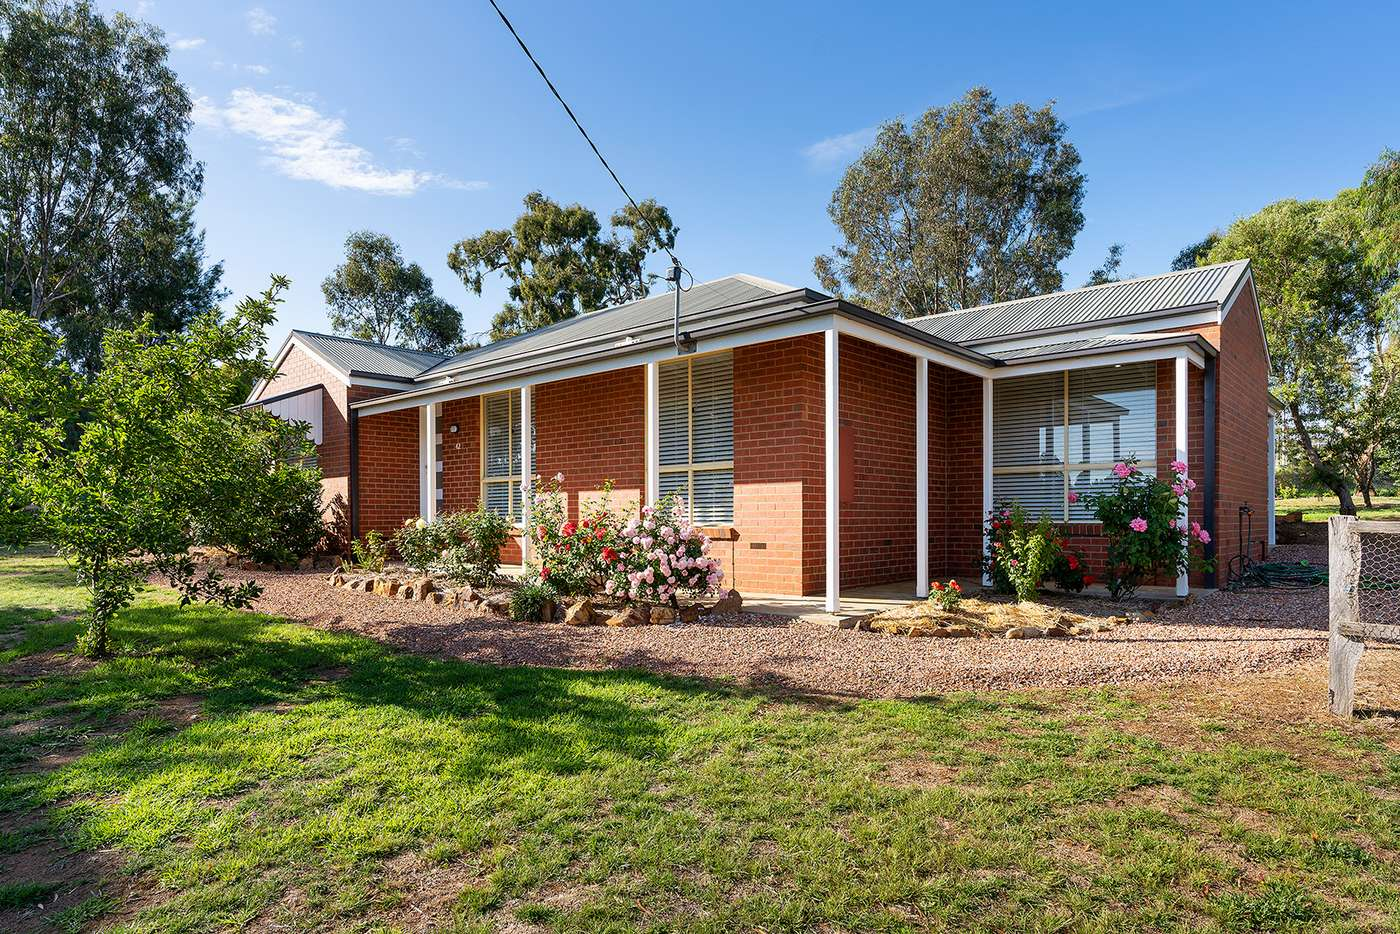 Main view of Homely house listing, 42 Fryers Street, Guildford VIC 3451